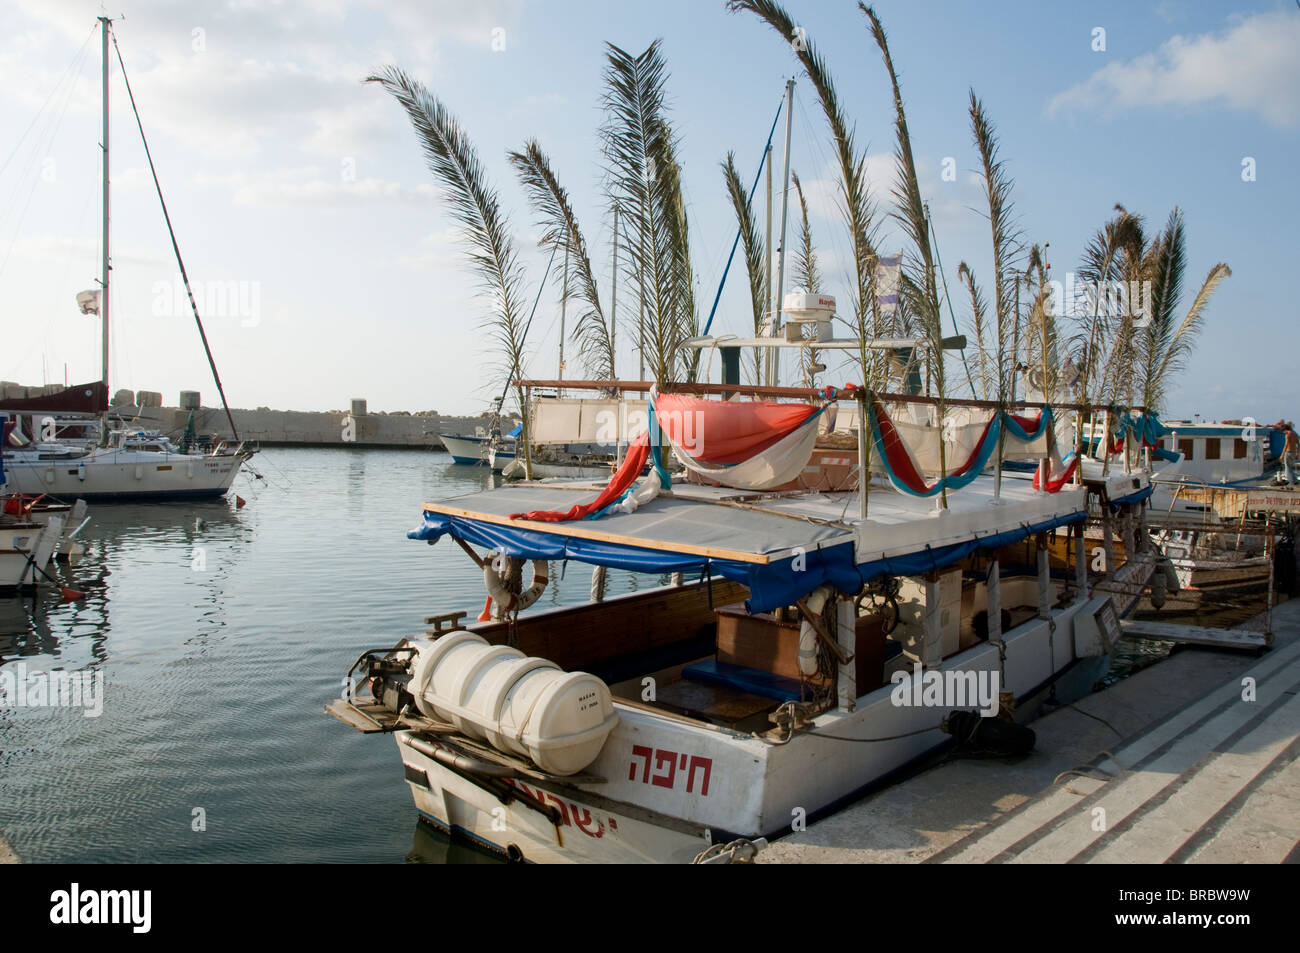 Boat decked in palm tree branches to celebrate Succoth, Old Jaffa Port, Tel Aviv , Israel - Stock Image